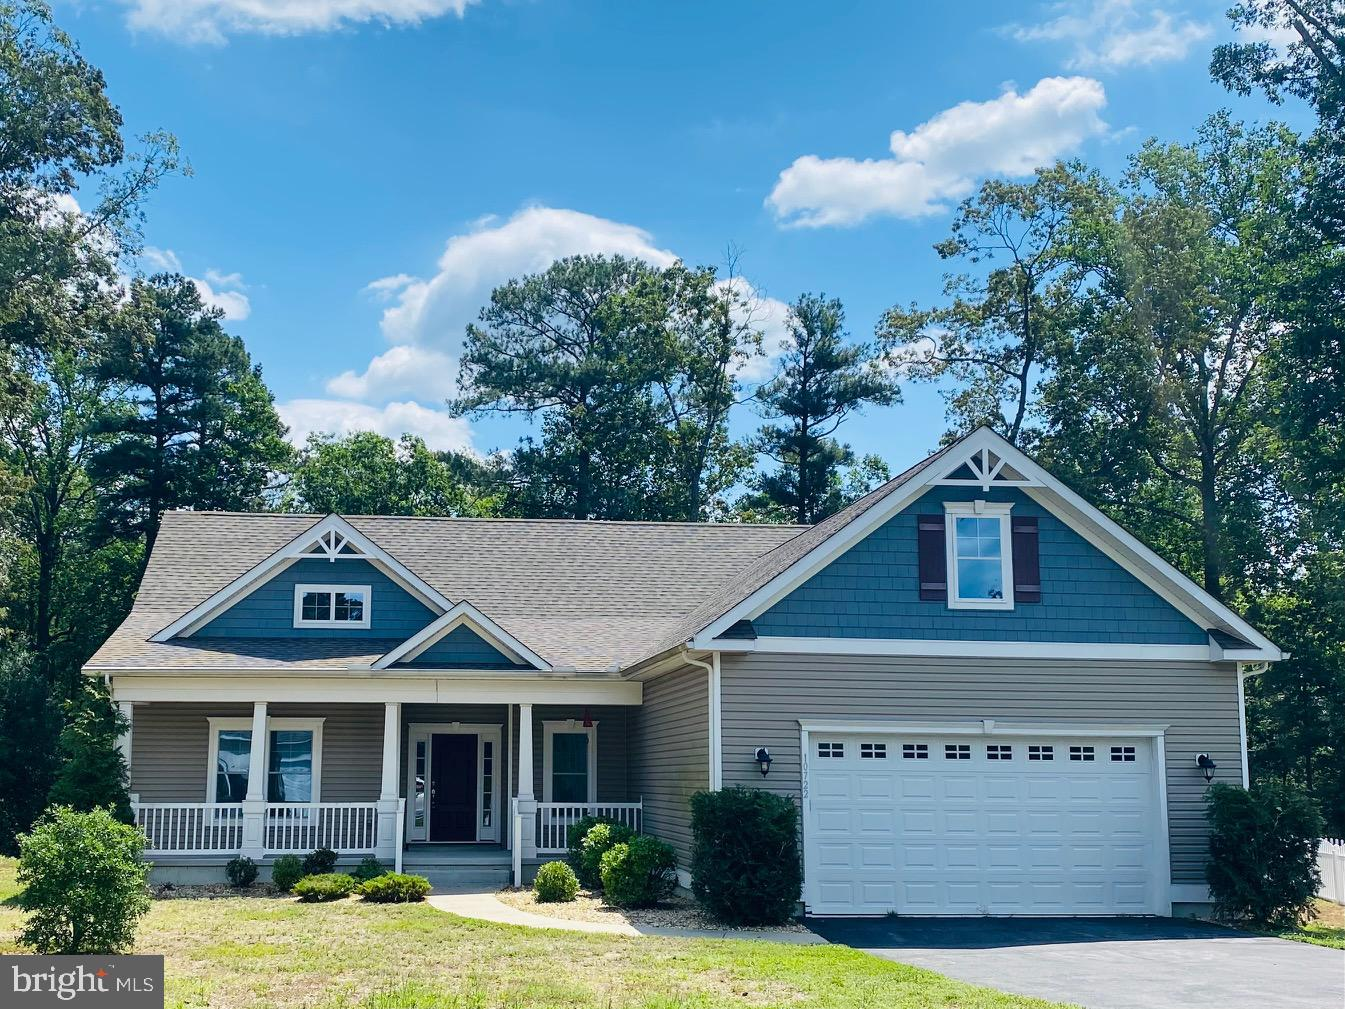 An Insight Home that is just beautiful.   3 Bedrooms plus an office and sun room with 2 full baths.